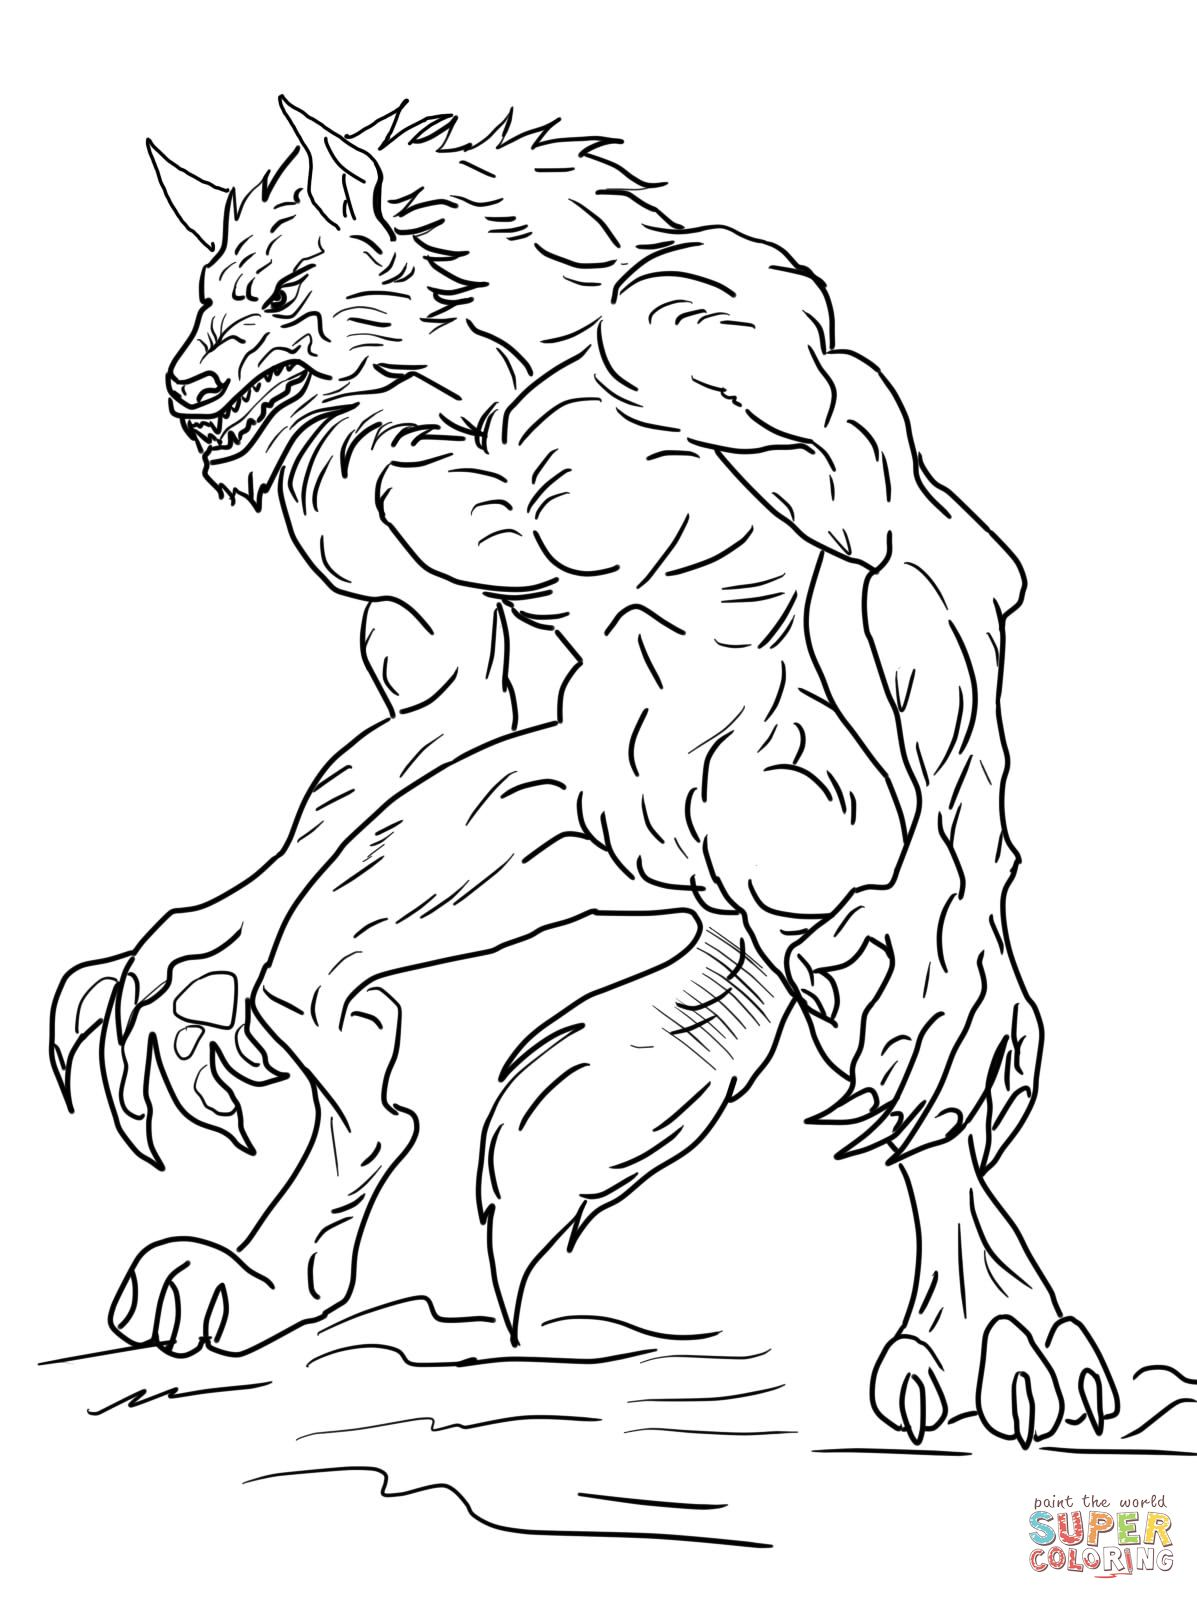 Ben 10 Alien Force Swampfire Coloring Page Free Printable Coloring Pages Animal Coloring Pages Cartoon Coloring Pages Werewolf